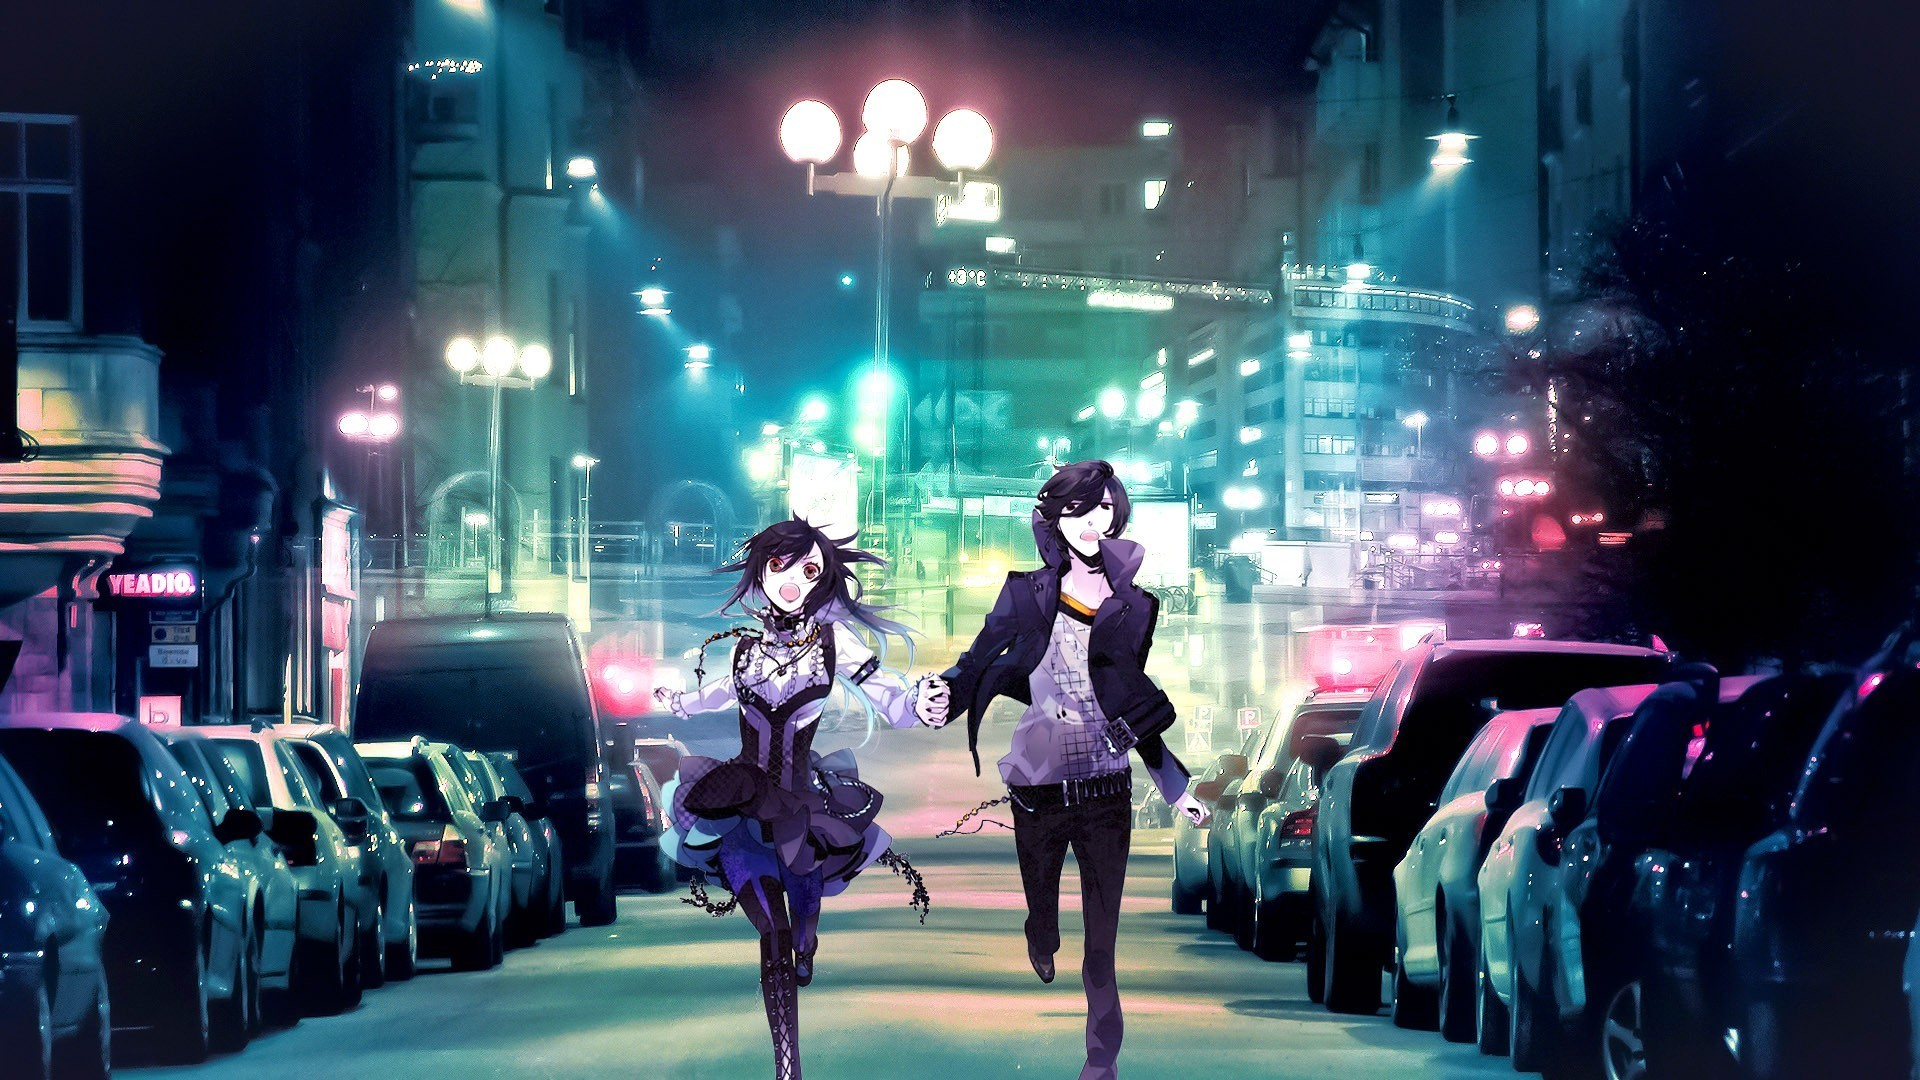 anime phone background download hd images amazing background images mac desktop  wallpapers hd pictures smart phone